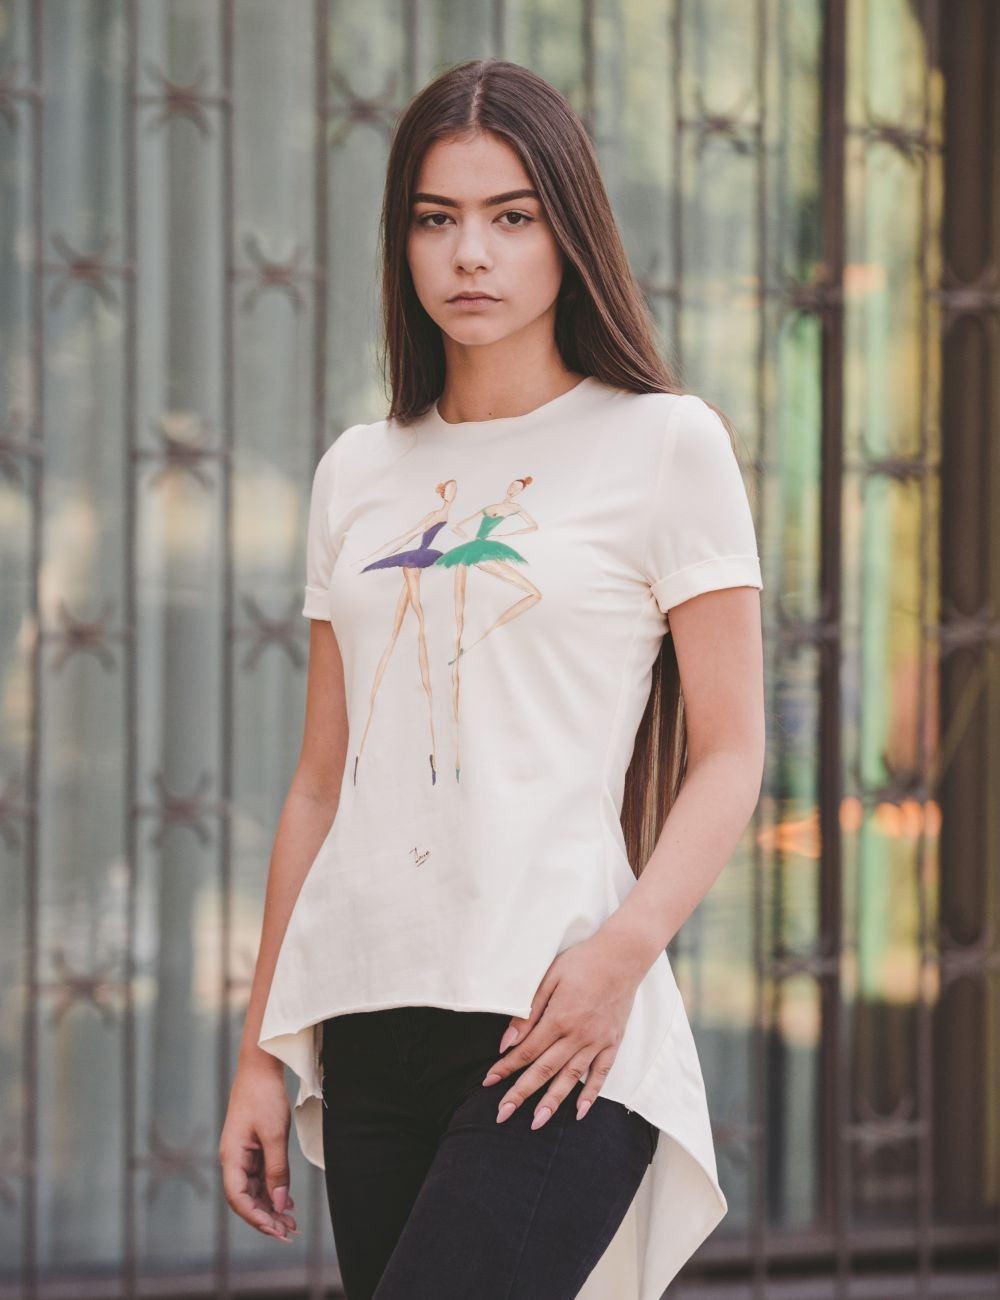 Duo Ballerina T-shirt